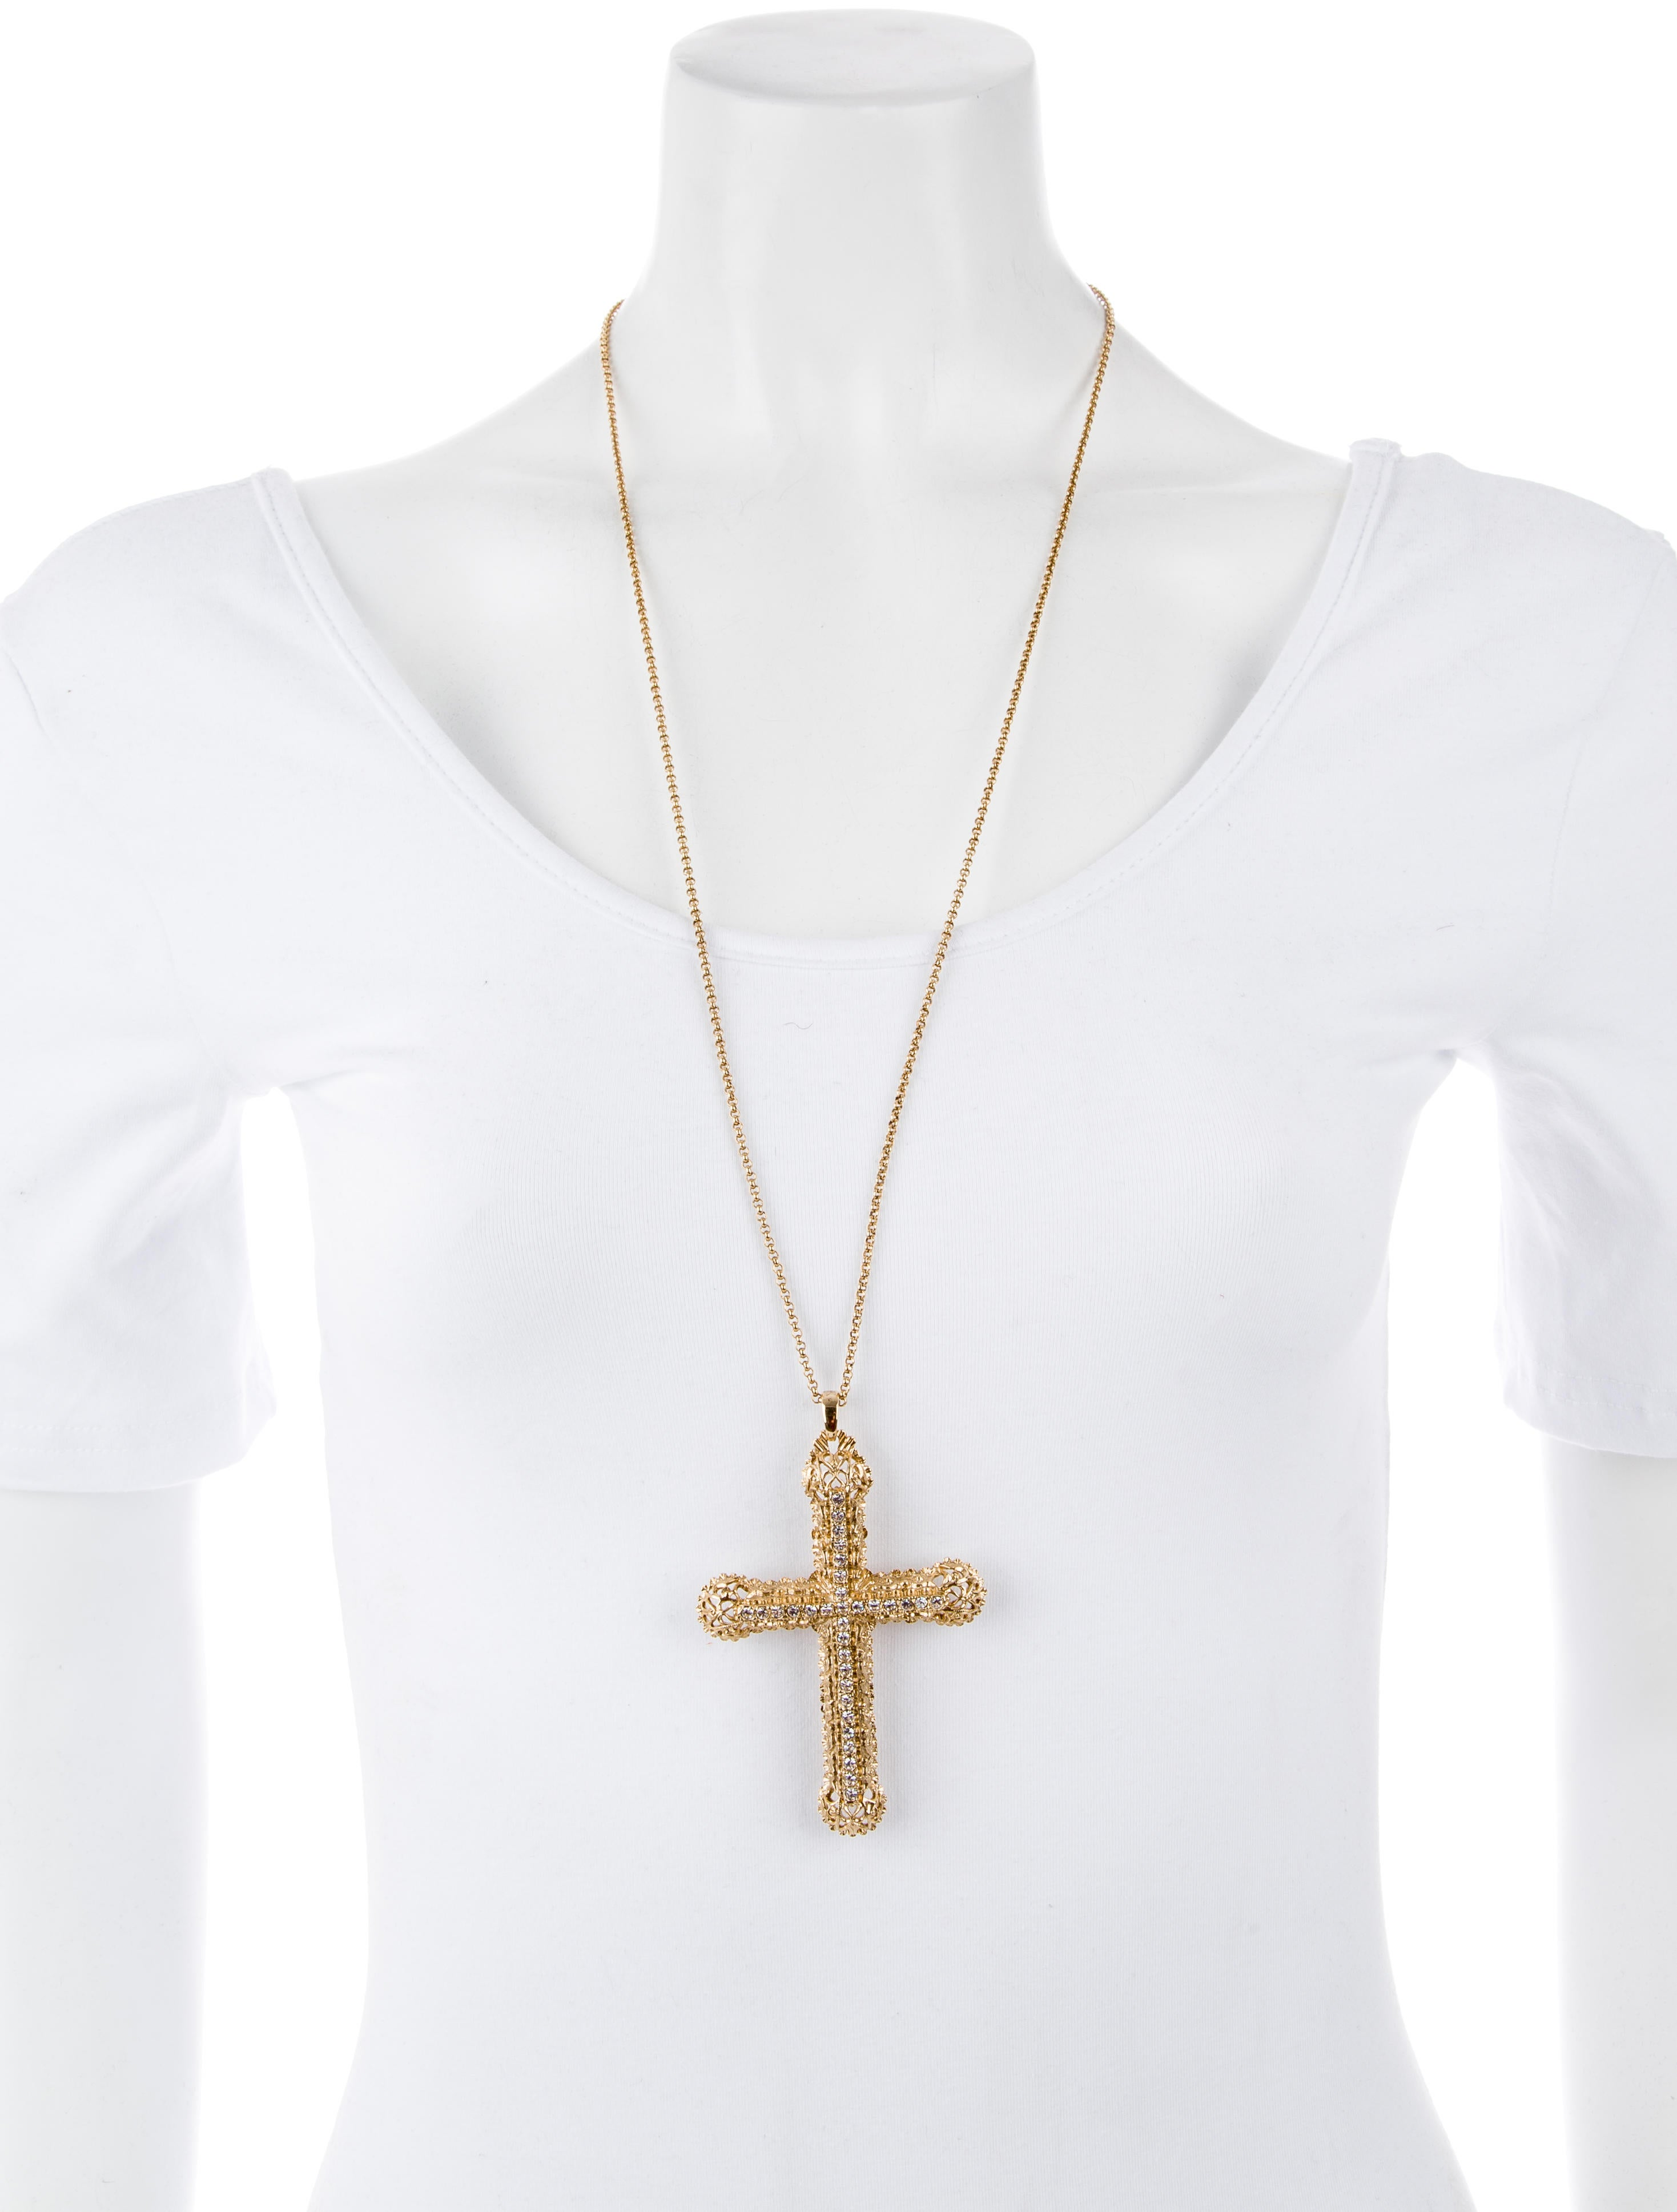 Kenneth jay lane large cross pendant necklace necklaces wke23038 large cross pendant necklace mozeypictures Image collections